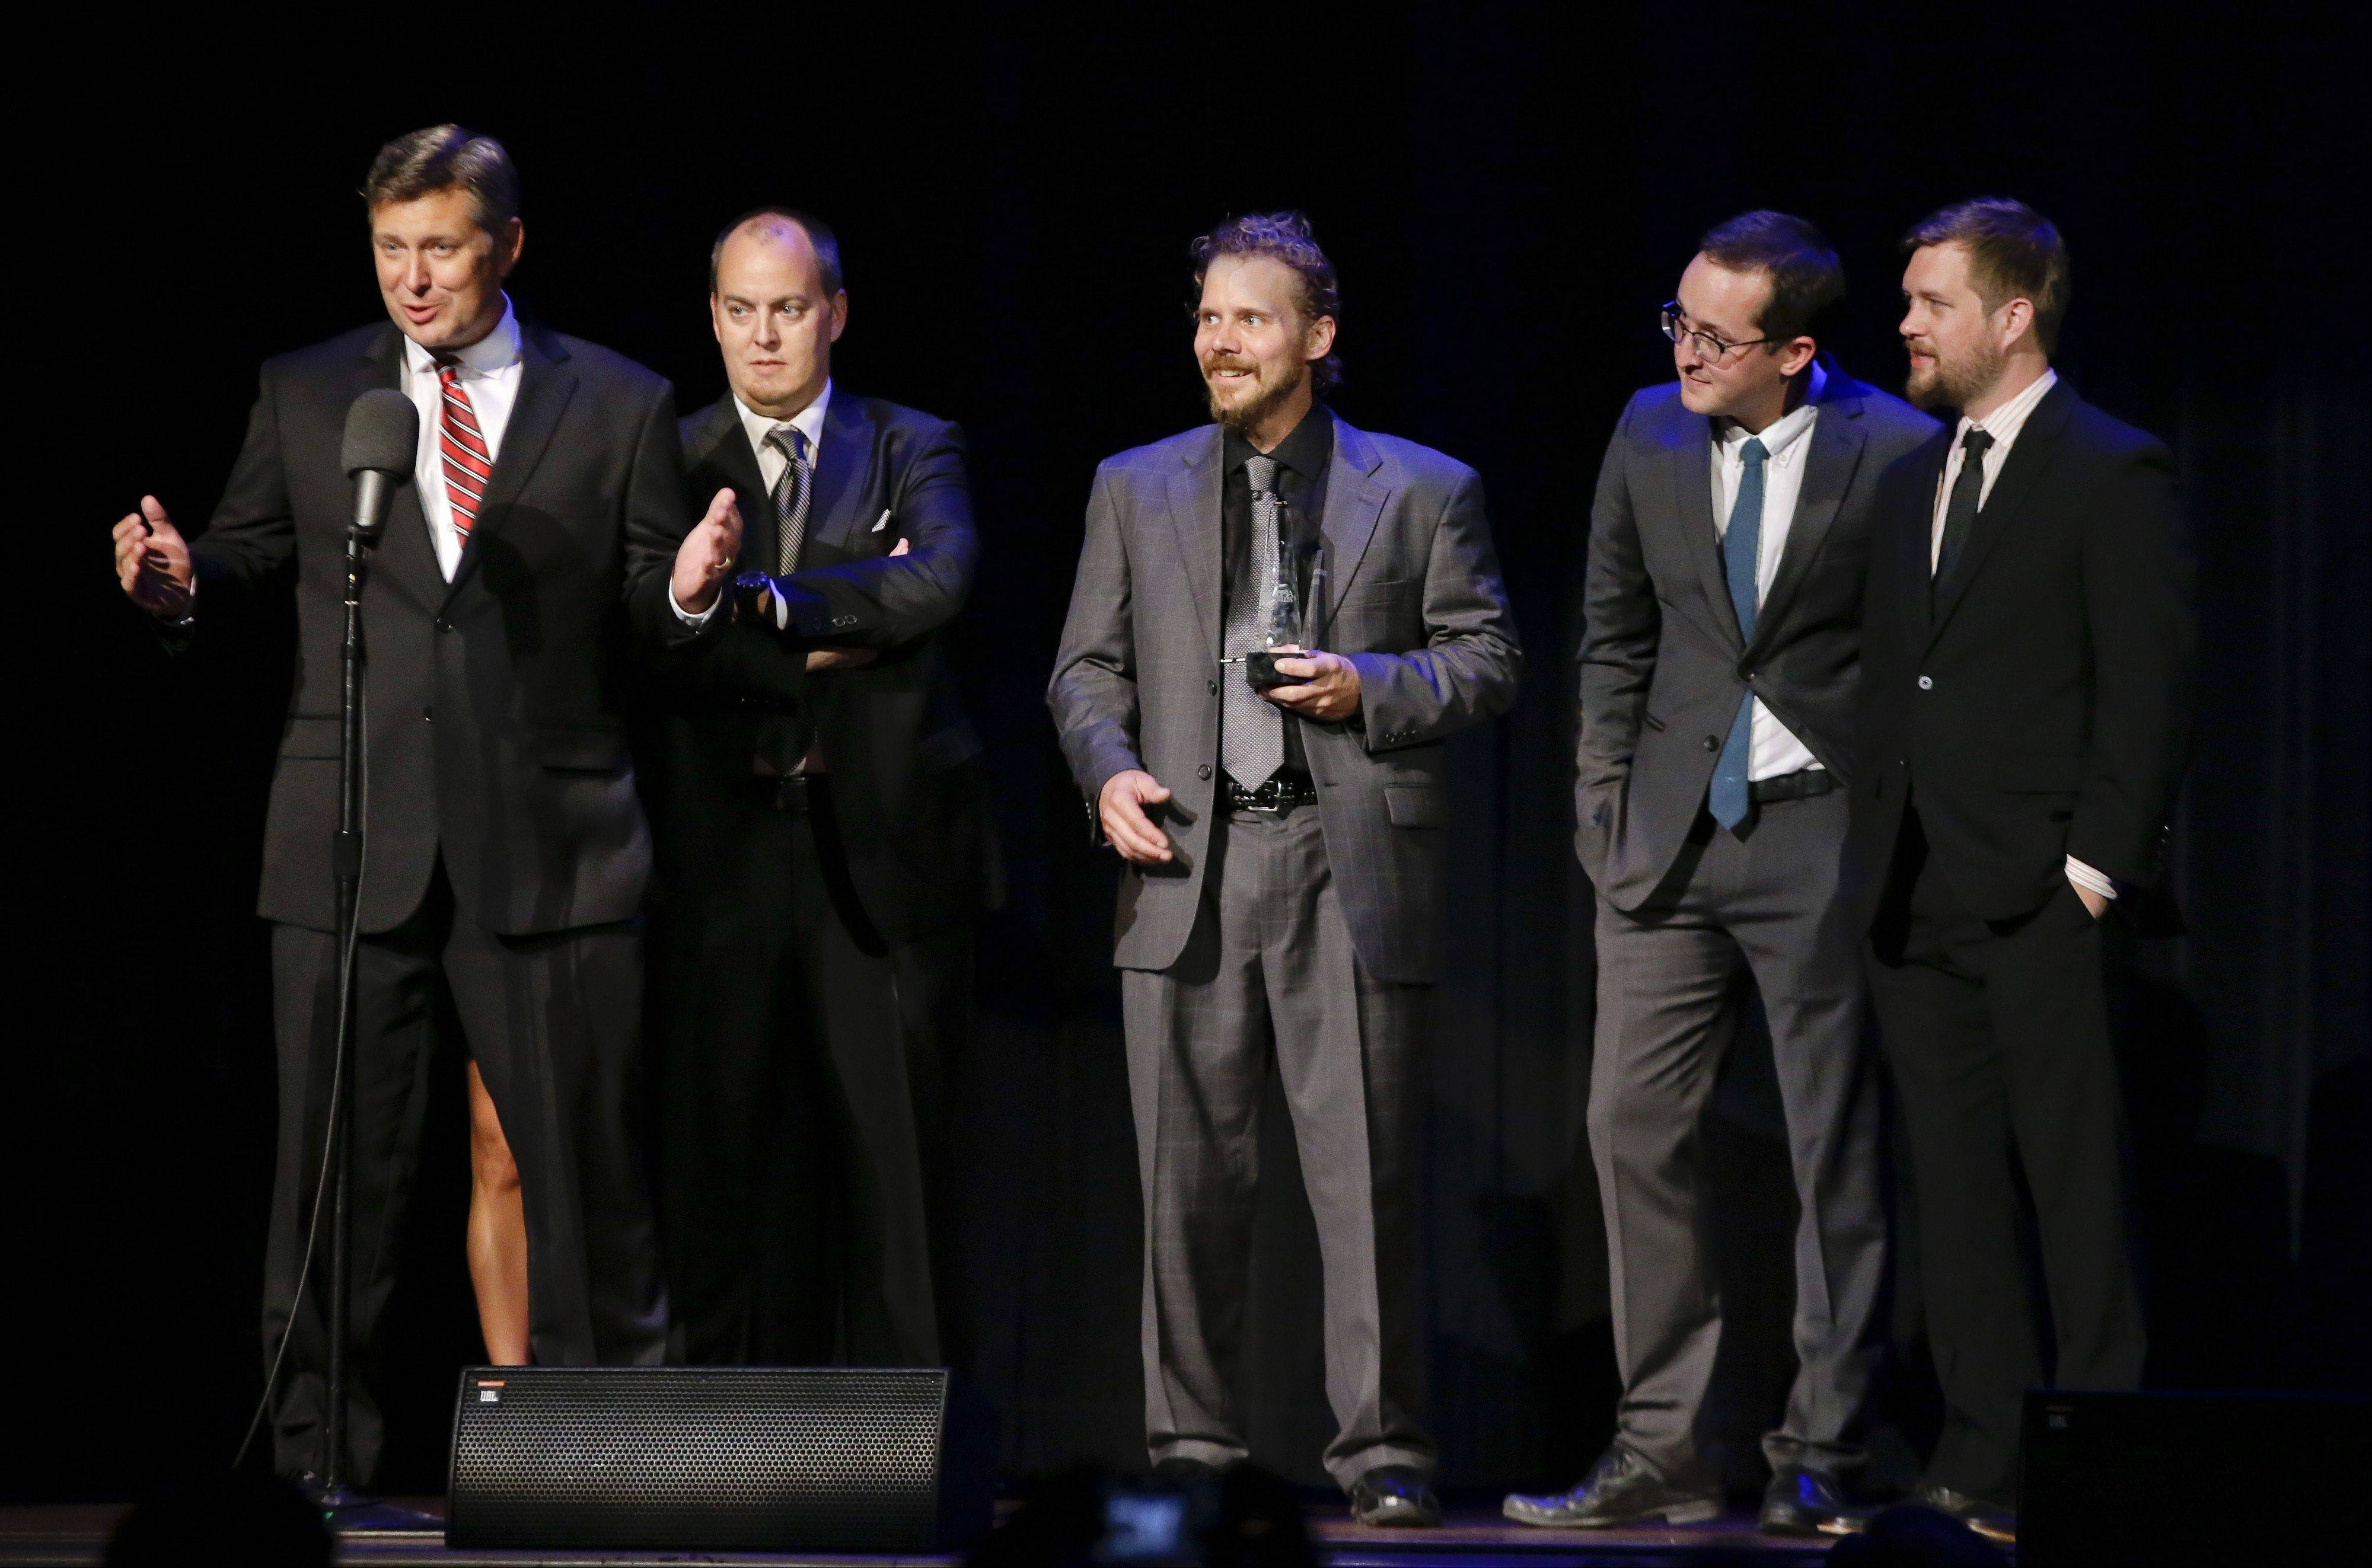 The Gibson Brothers accept the entertainer of the year award at the International Bluegrass Music Association Awards show on Thursday in Nashville.